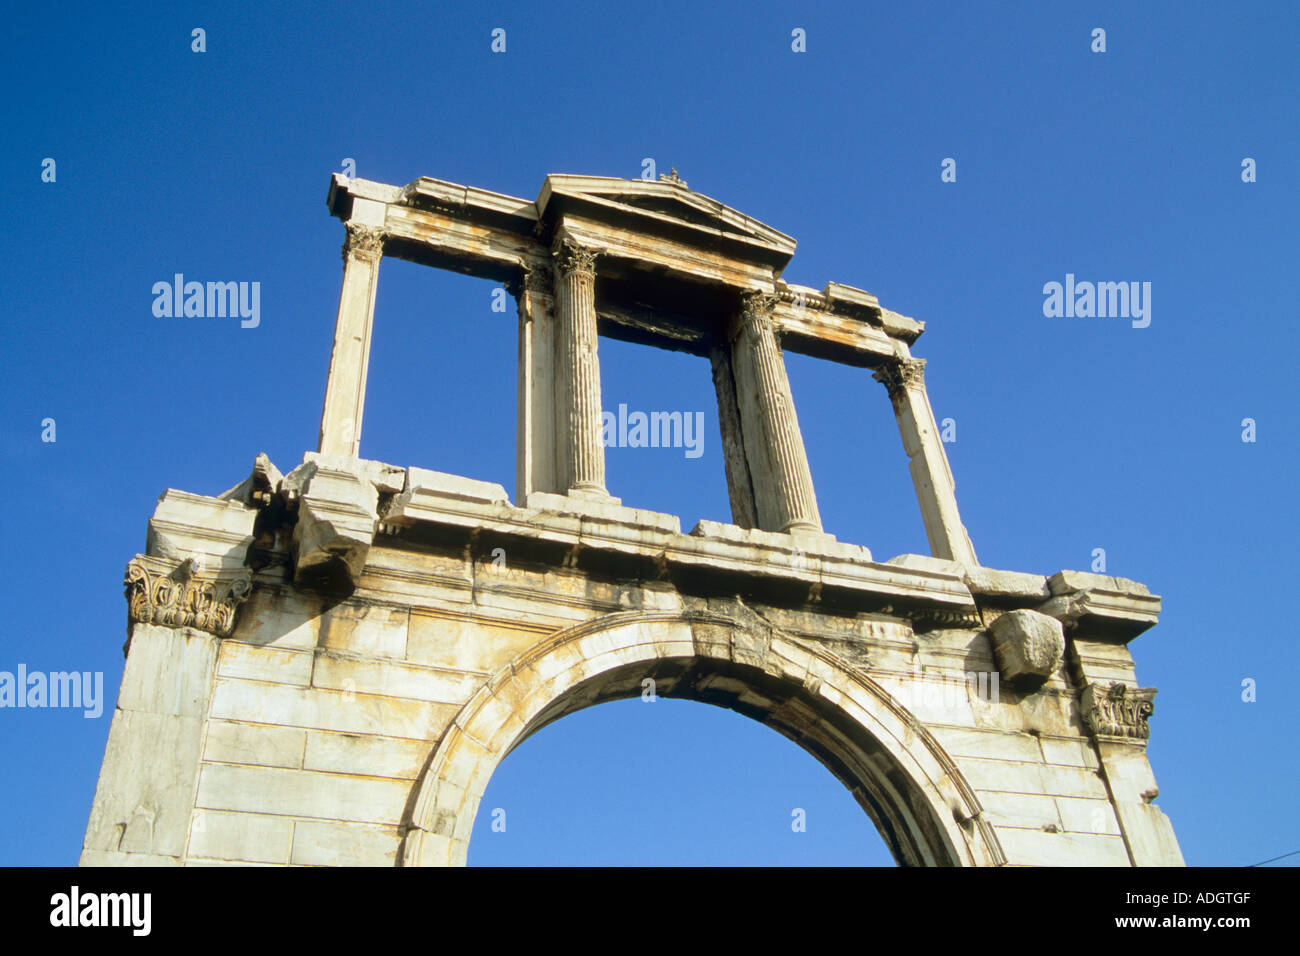 Greece Athens Hadrian s Arch - Stock Image